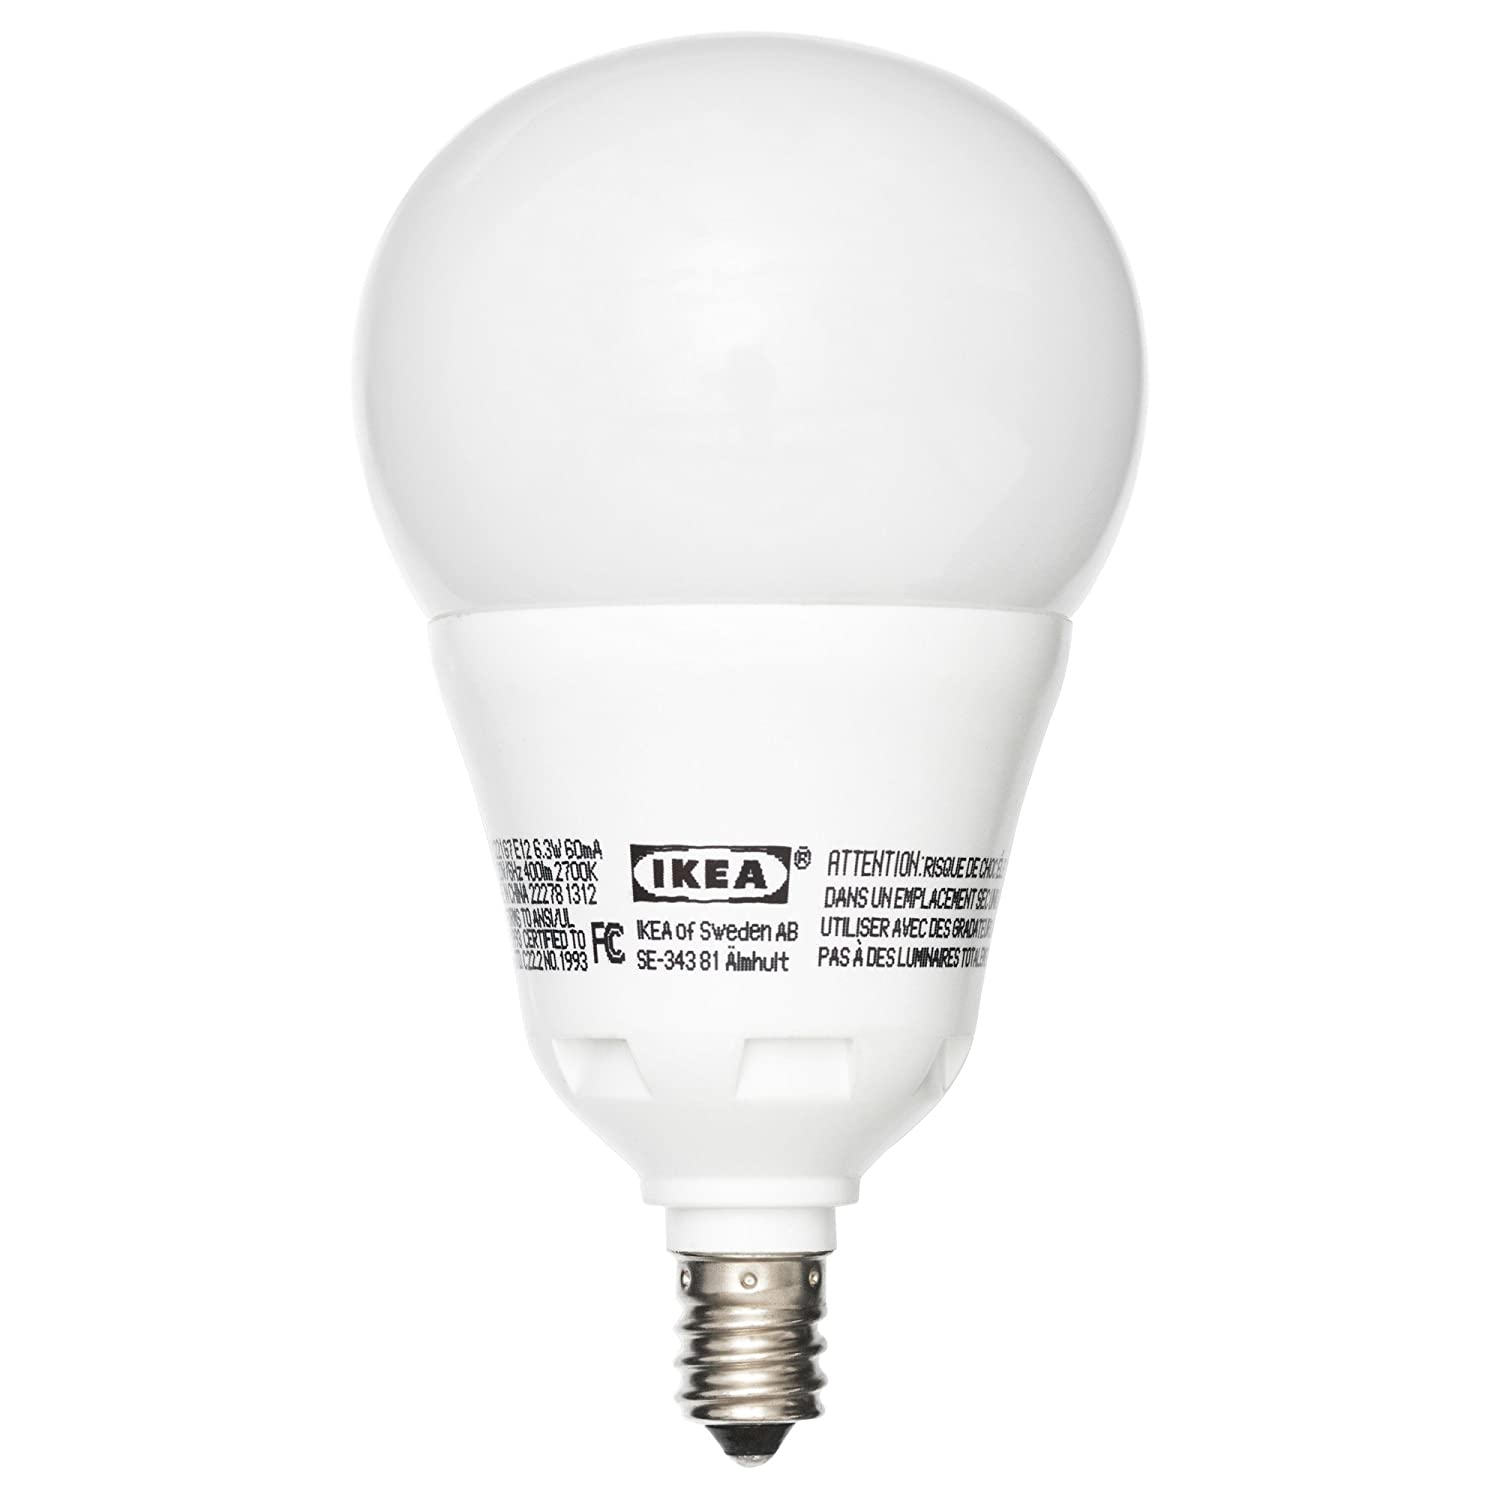 Ikea Ledare E12 400 LED Light Bulb 6.3 Watt DIMMABLE Globe Opal ...